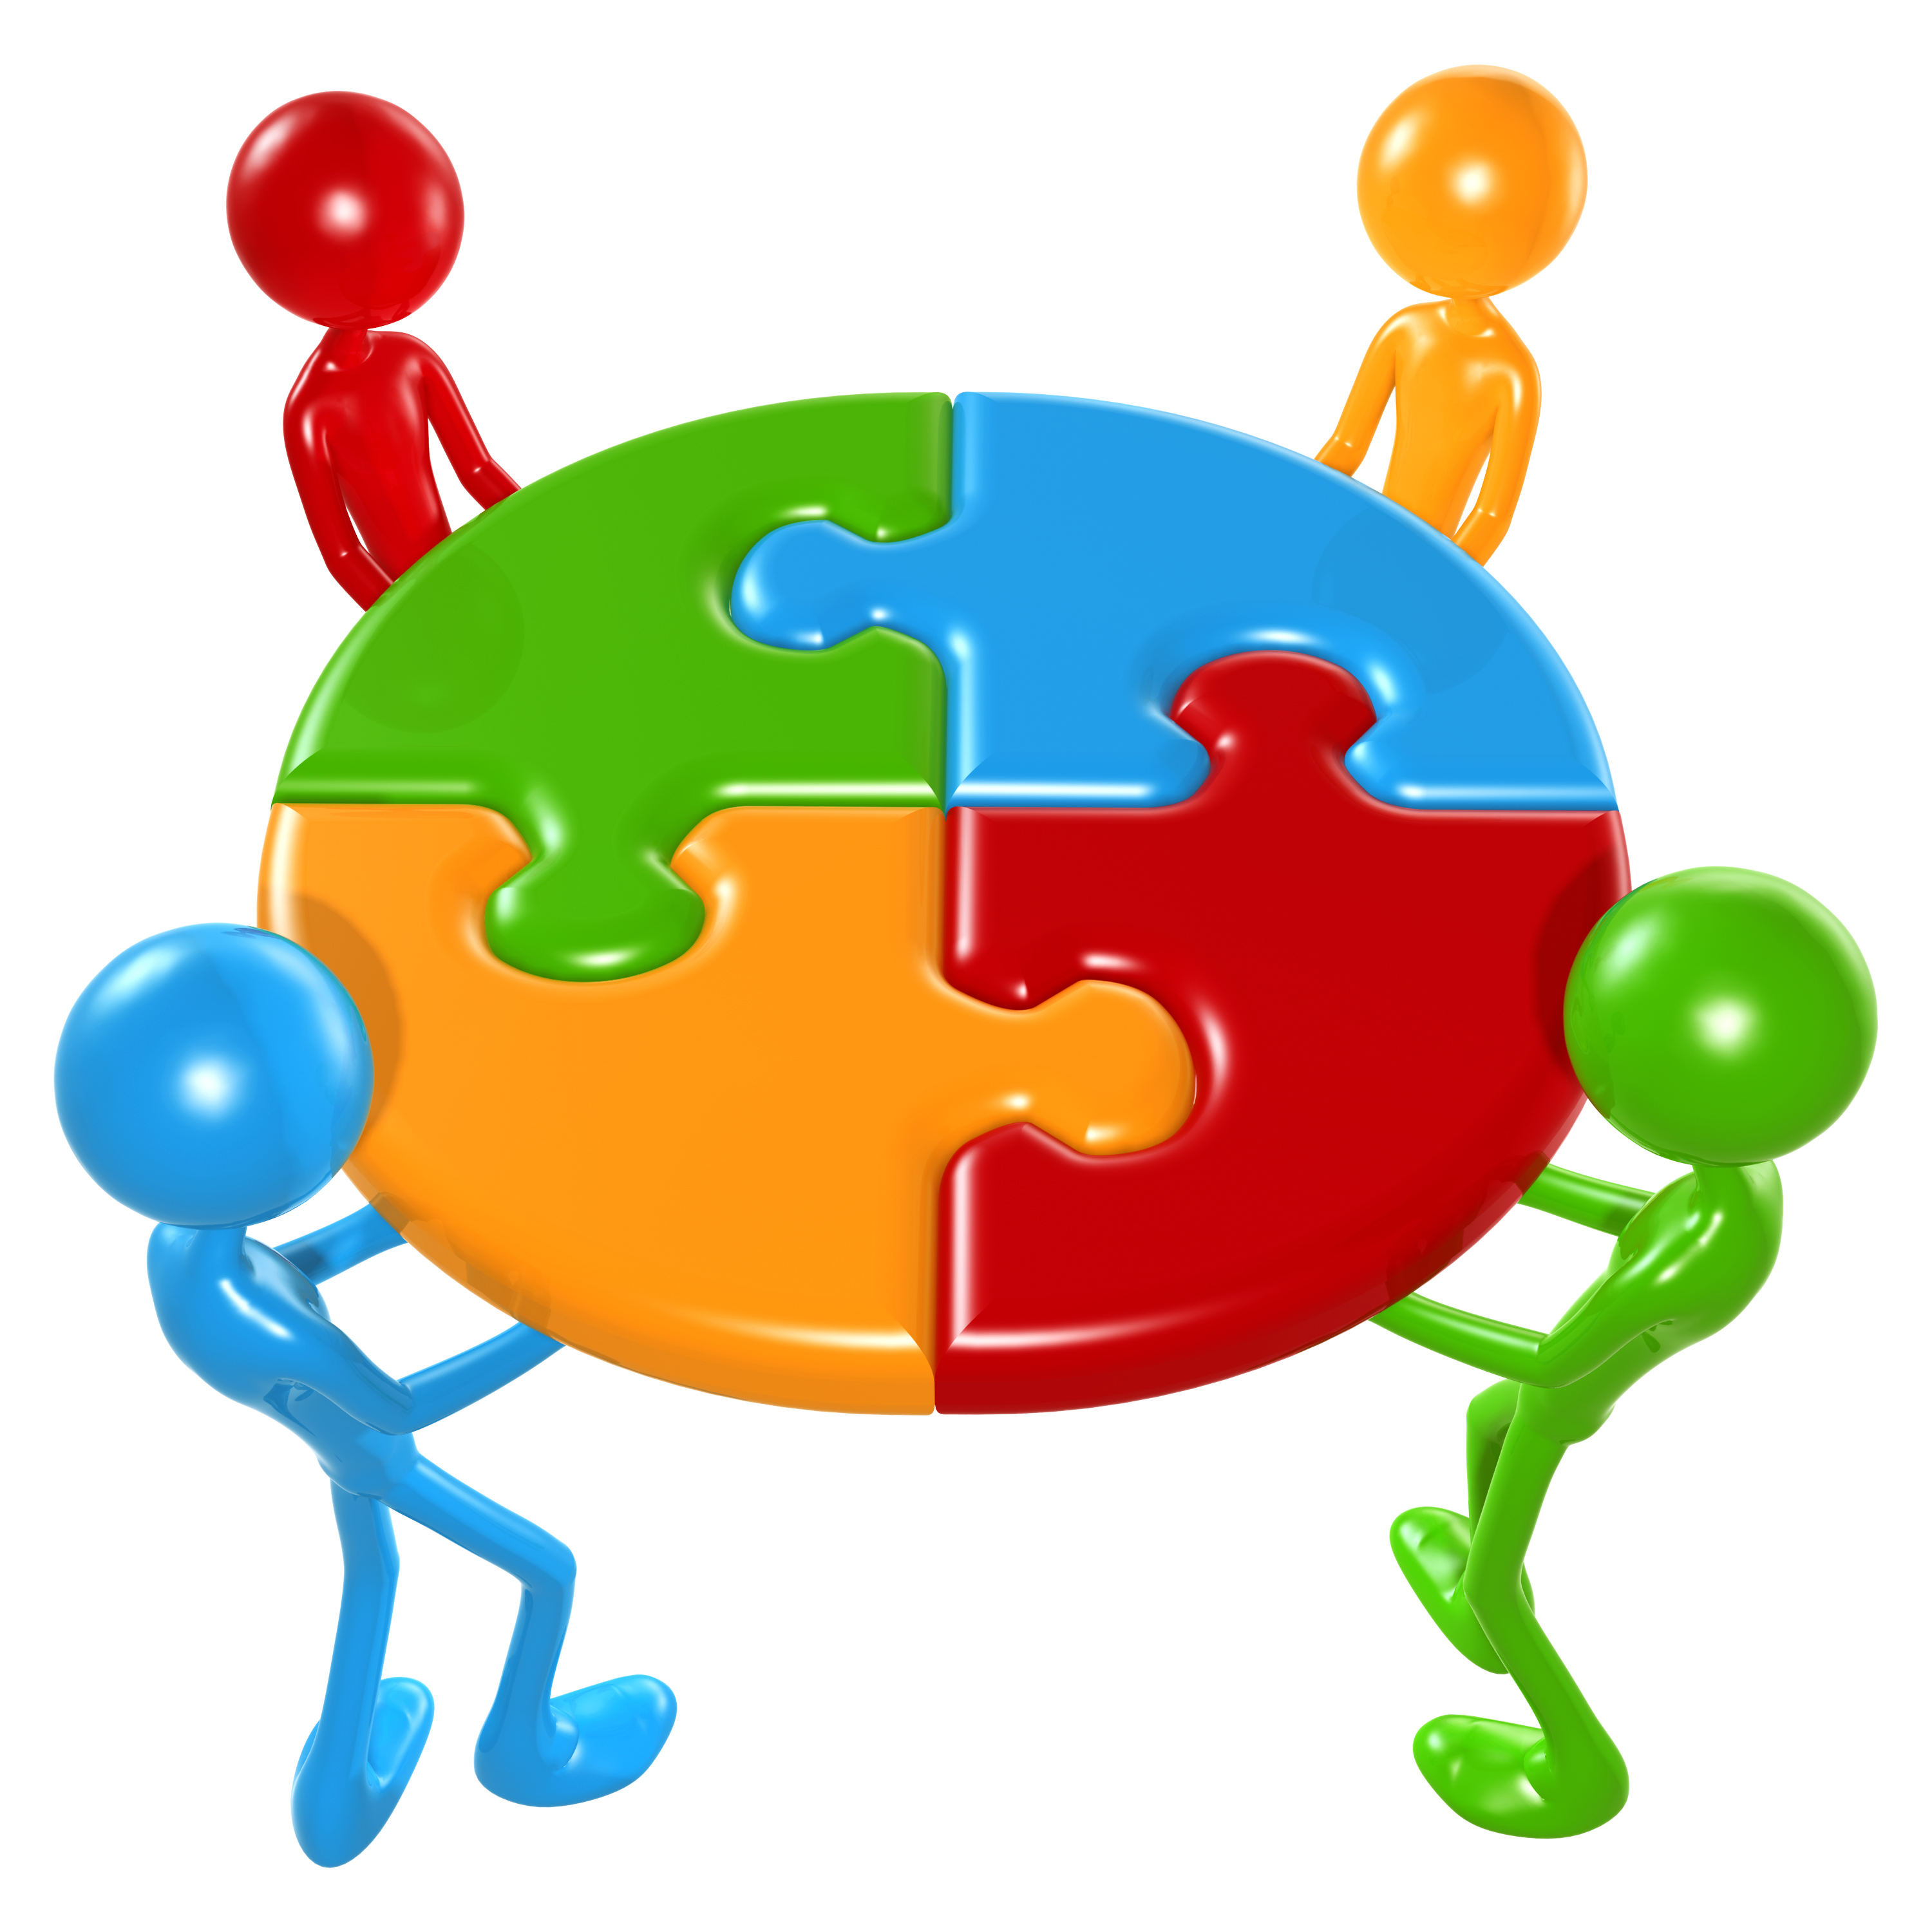 Description Working Together Teamwork Puzzle Concept.jpg